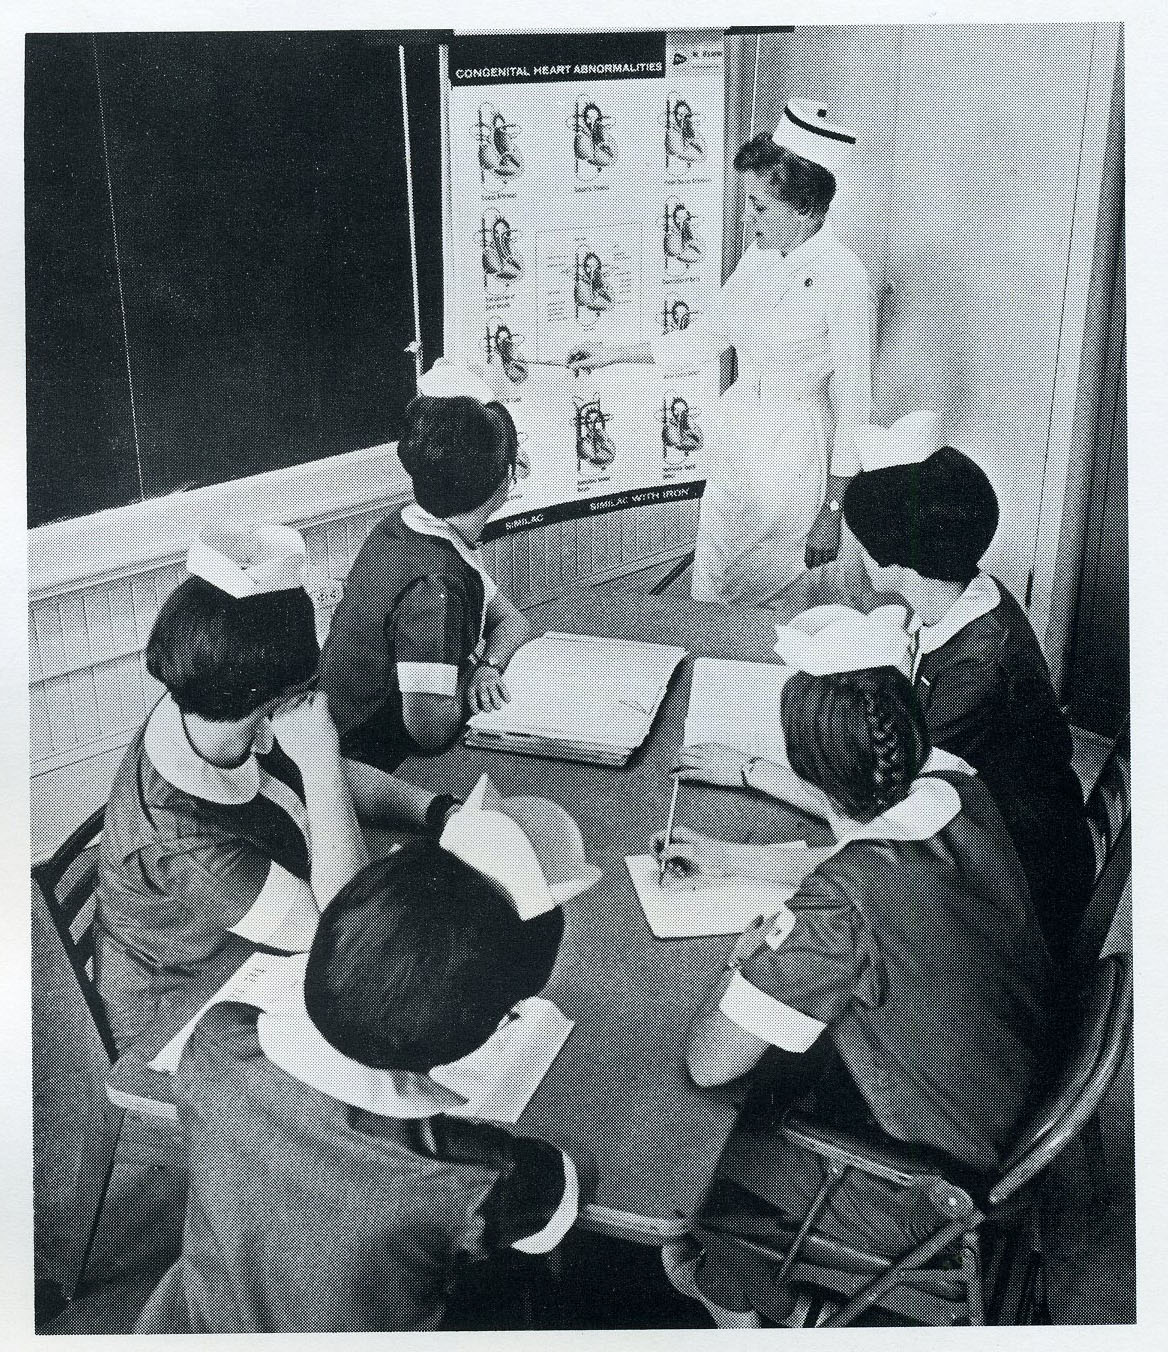 nursing class of 1970 at BCC